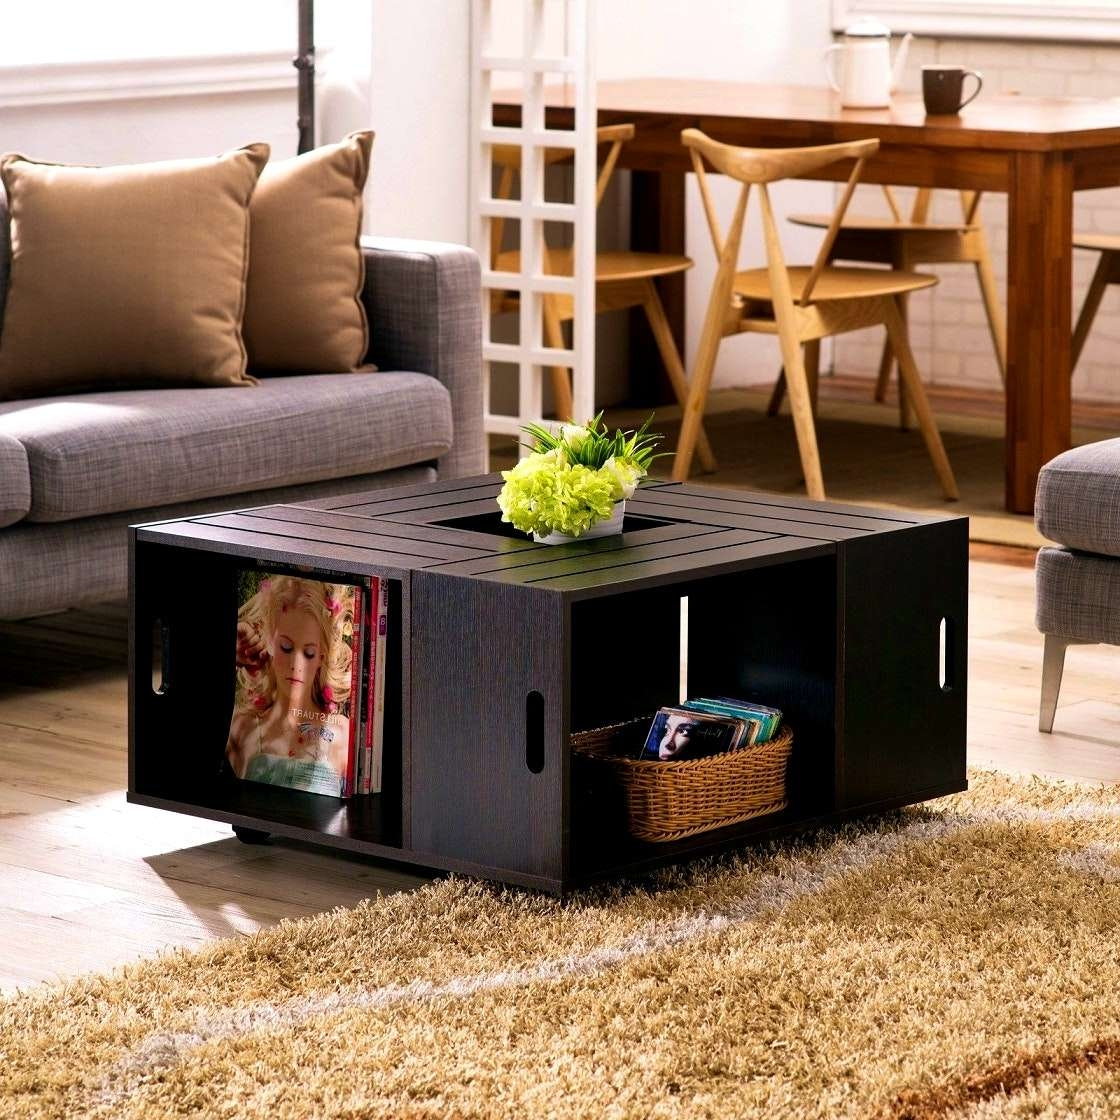 Famous Square Coffee Tables With Storage Throughout Uncategorized (View 10 of 20)